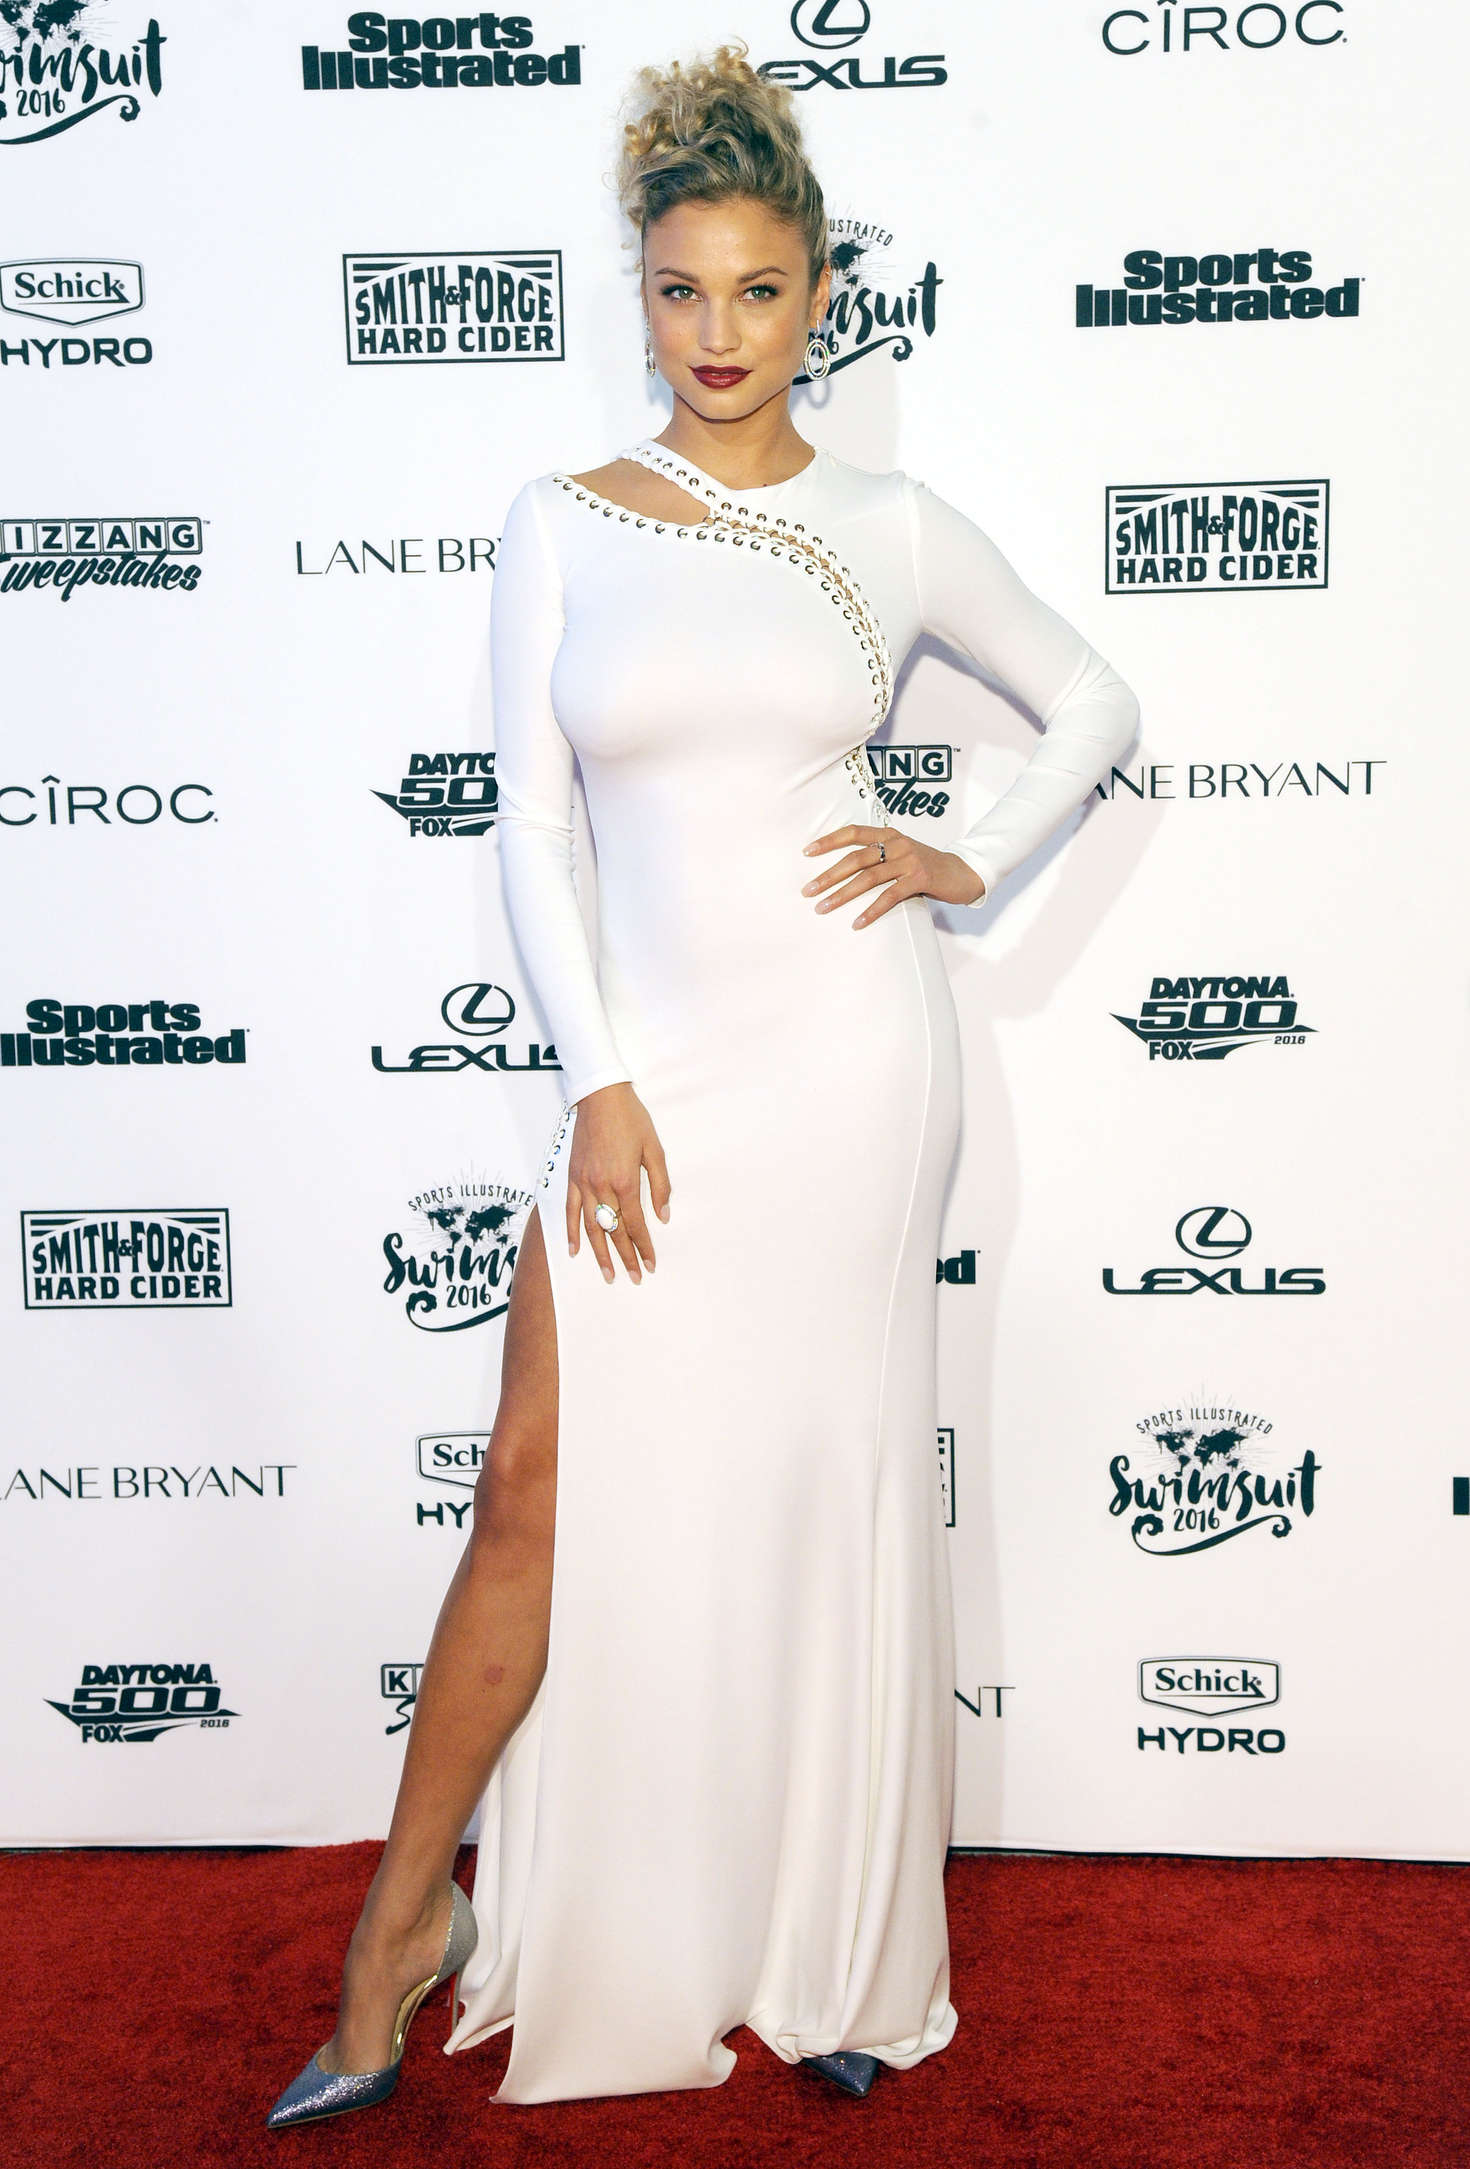 Rose Bertram Sports Illustrated Celebrates Swimsuit VIP Red Carpet Event in New York